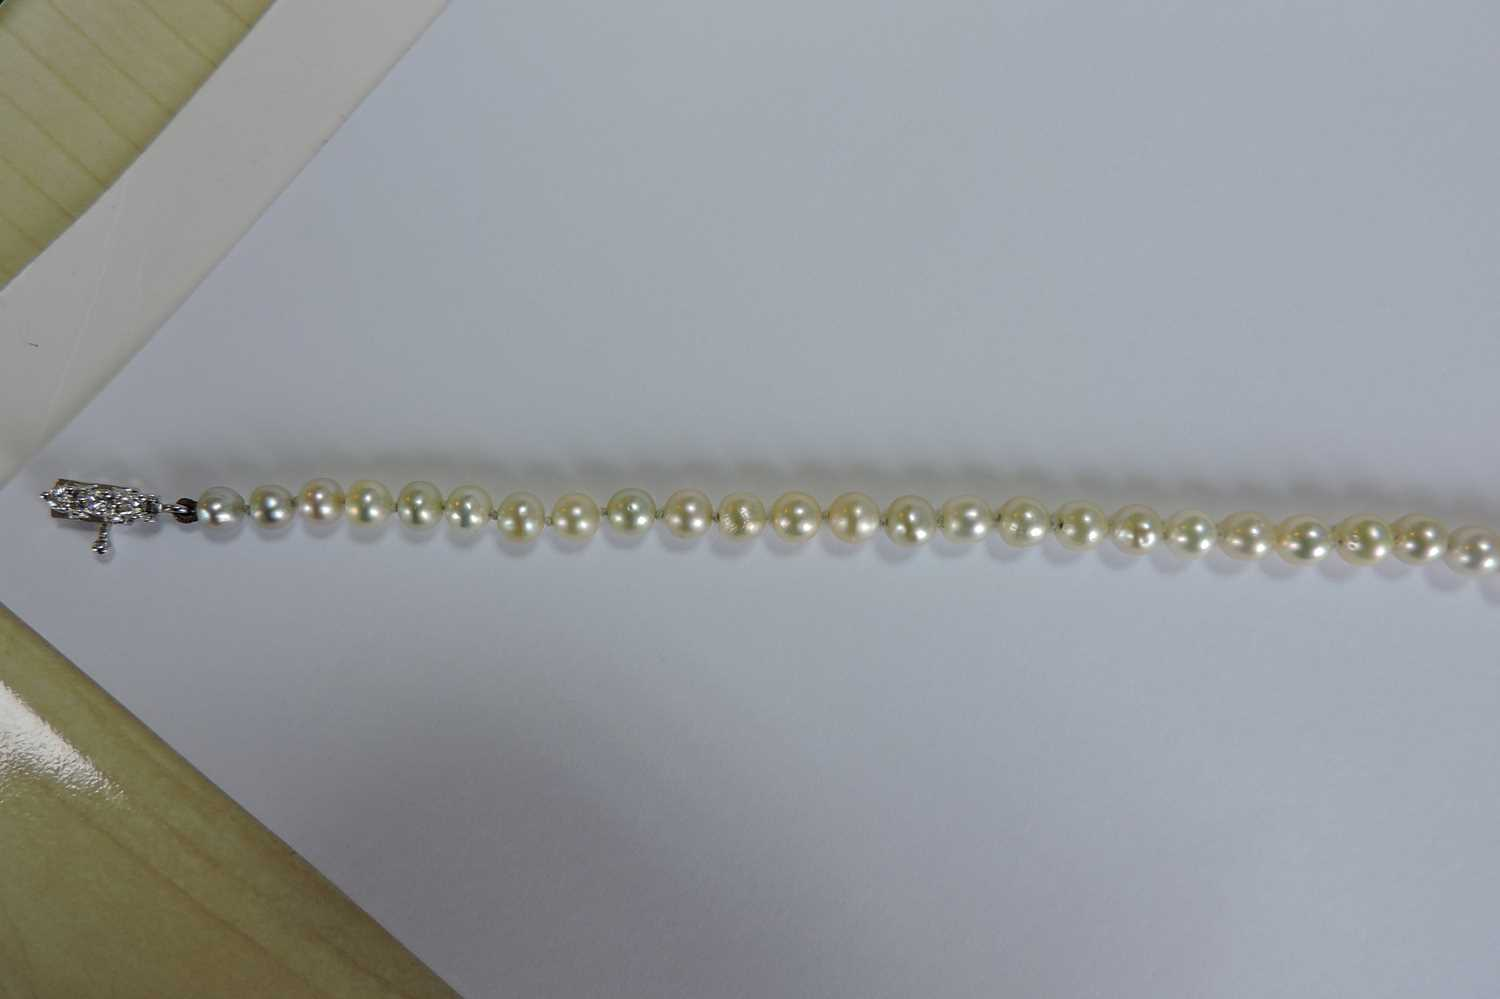 A single row graduated natural saltwater pearl necklace, - Image 10 of 12